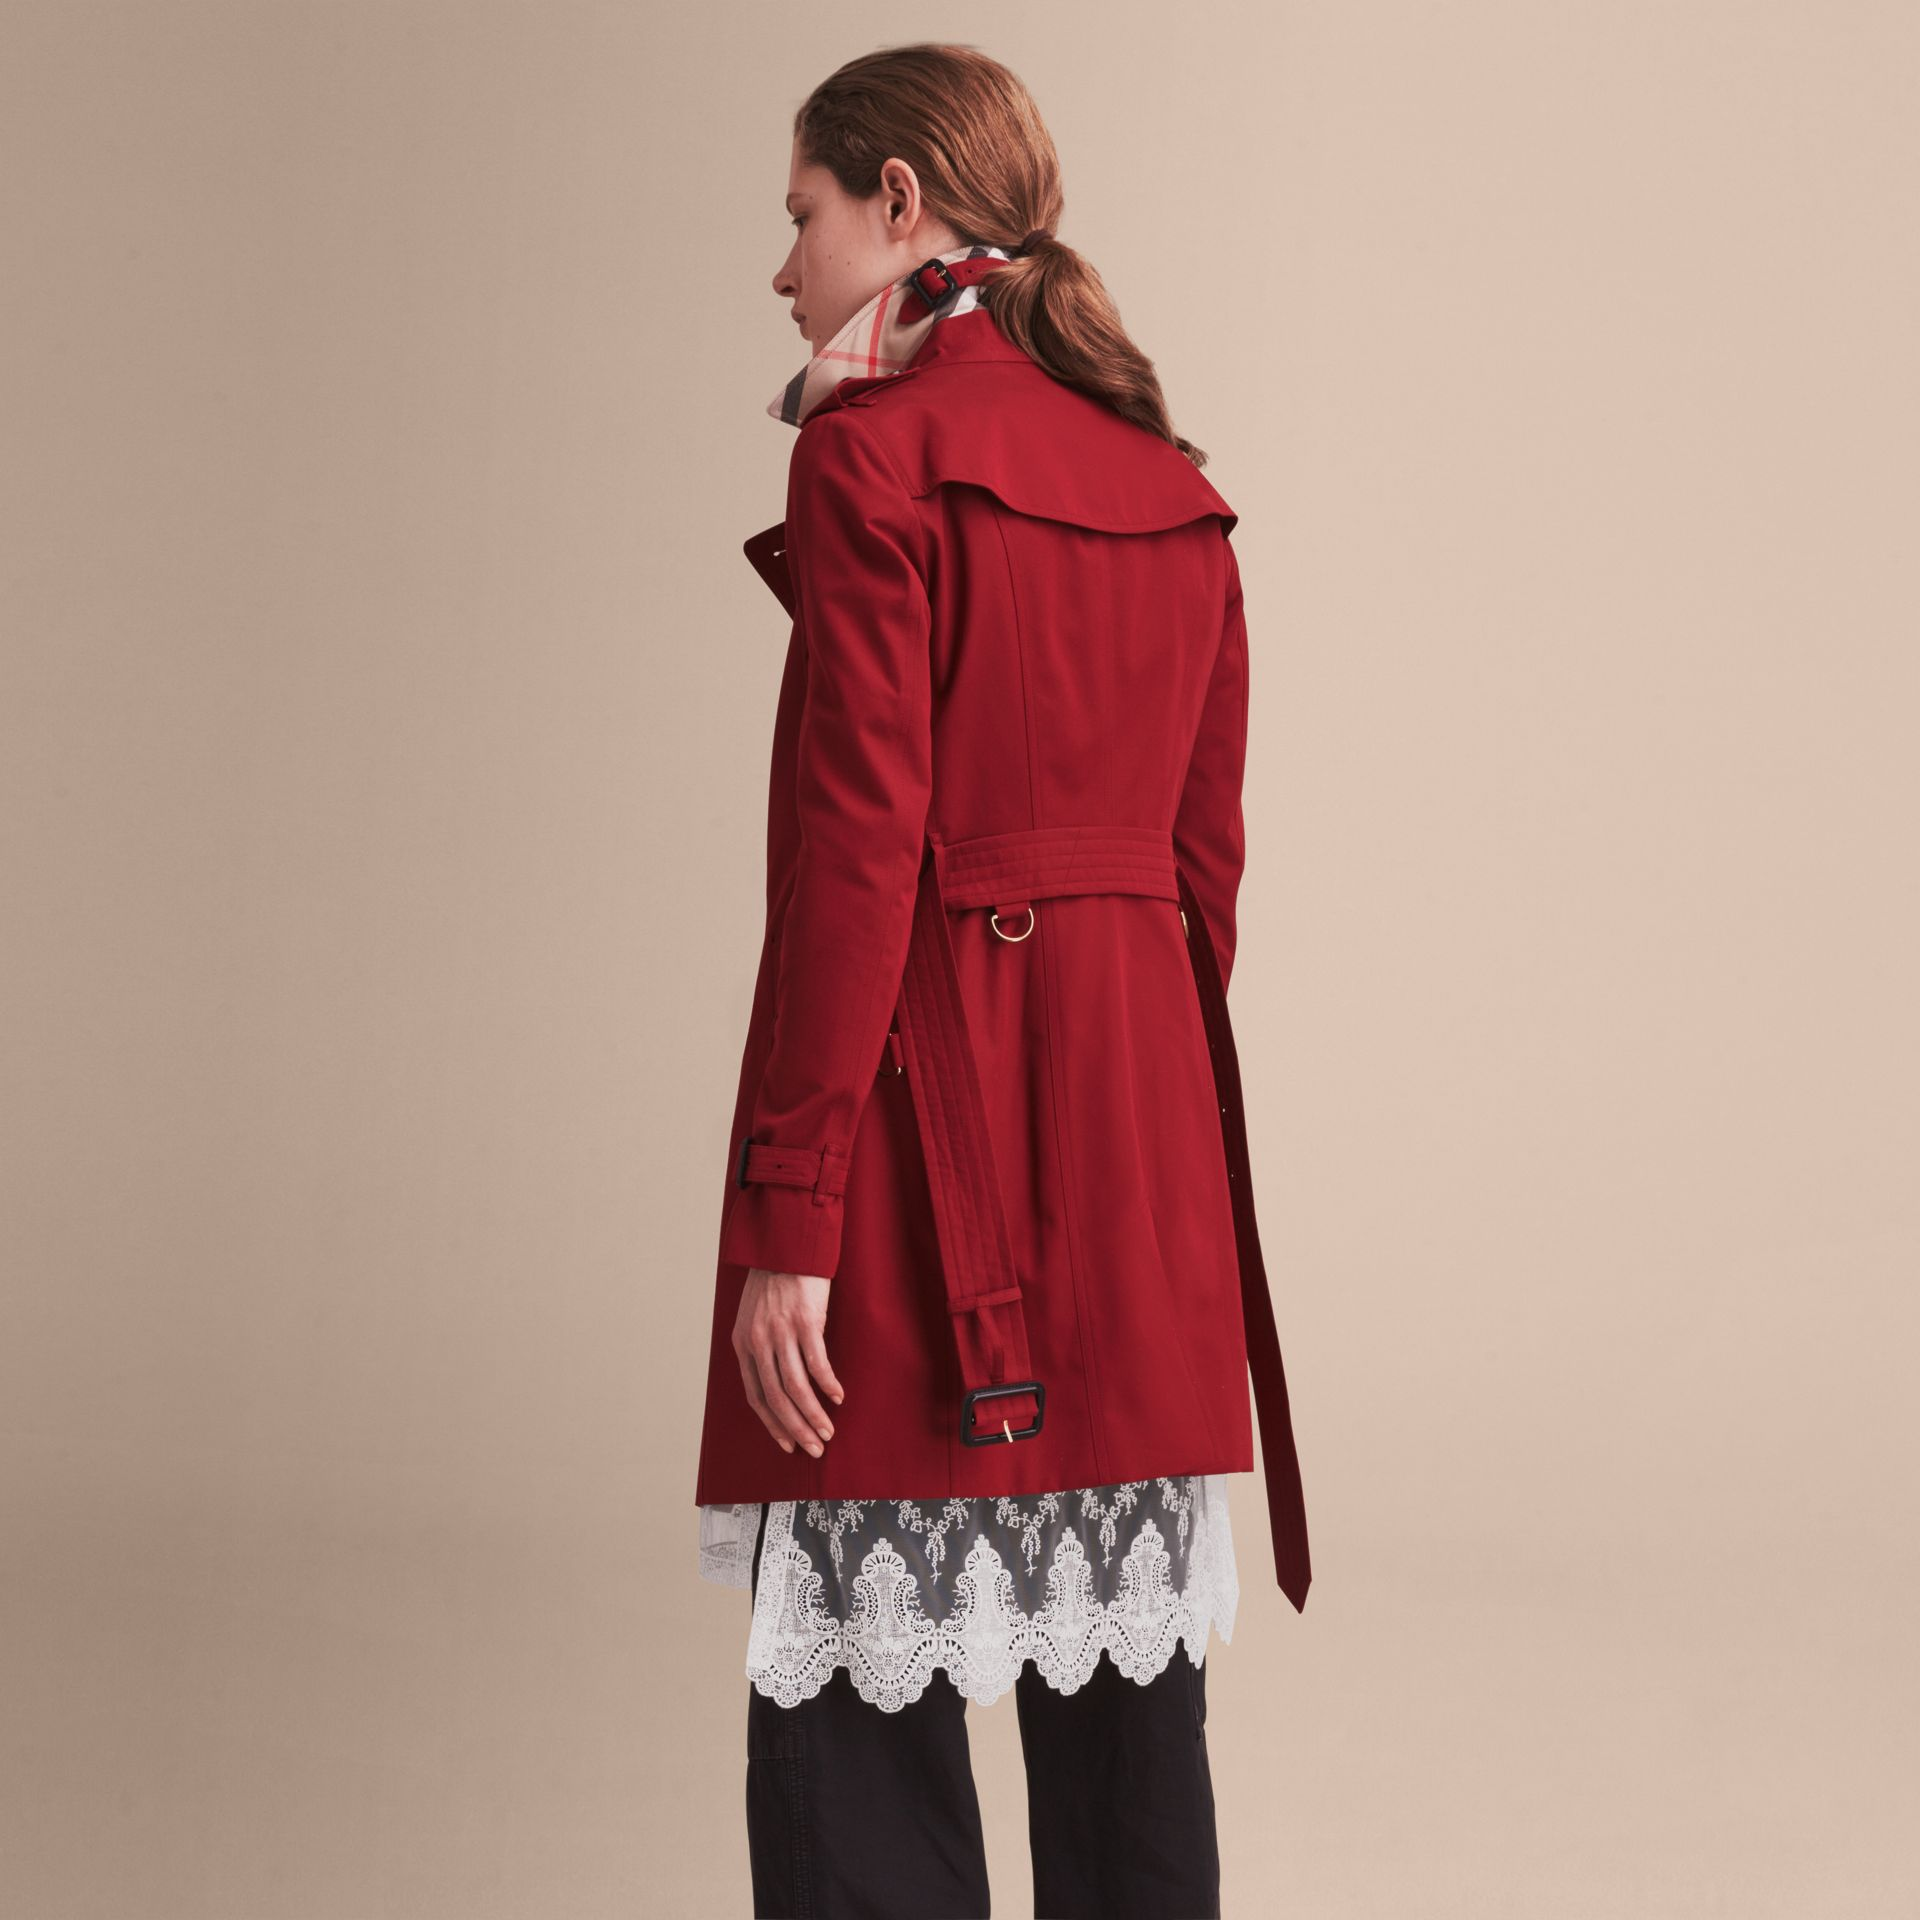 The Sandringham – Mid-length Heritage Trench Coat in Parade Red - Women | Burberry - gallery image 3